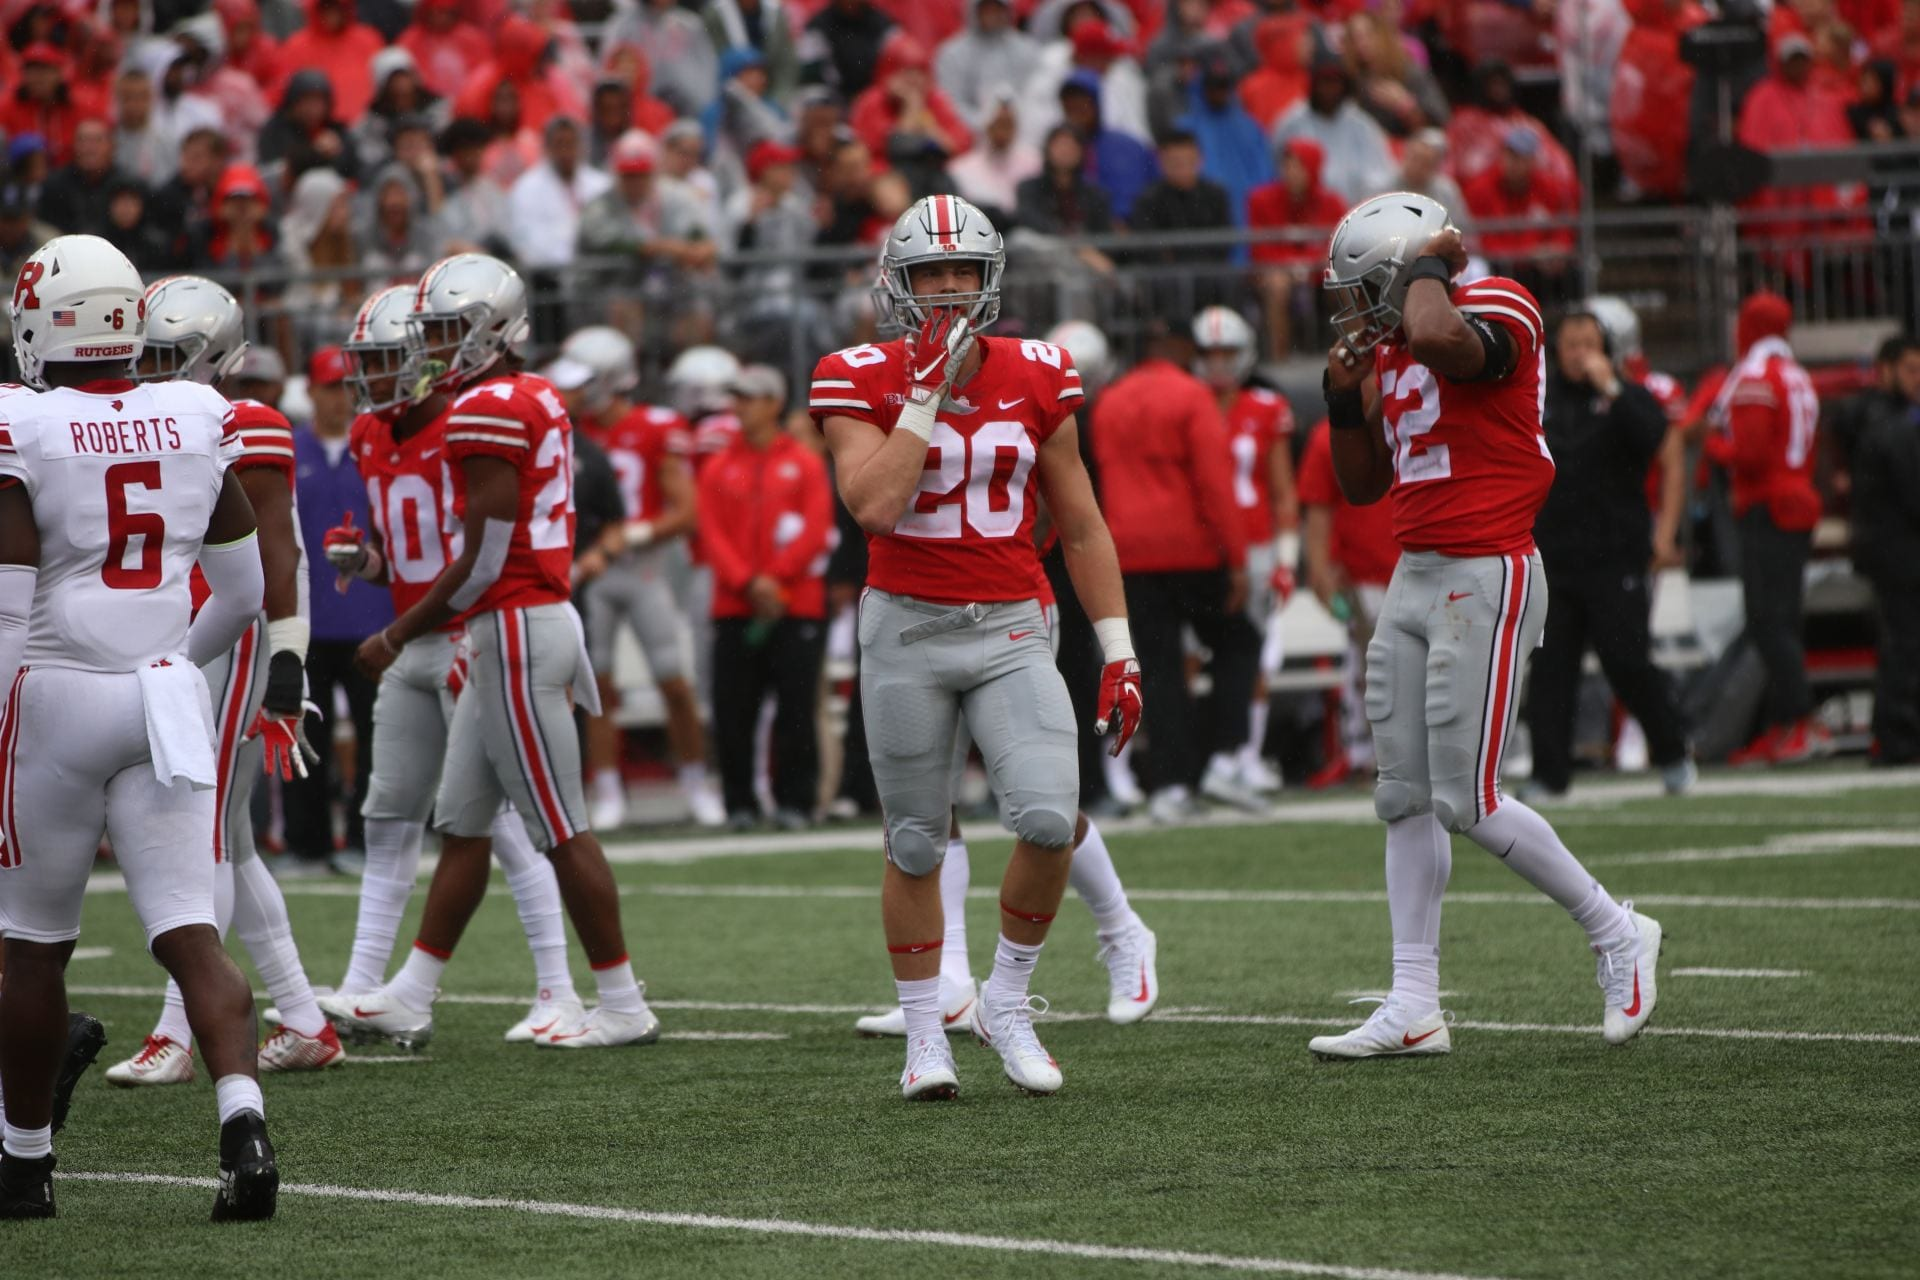 Pete Werner walks on the field at Ohio Stadium with teammates in the background